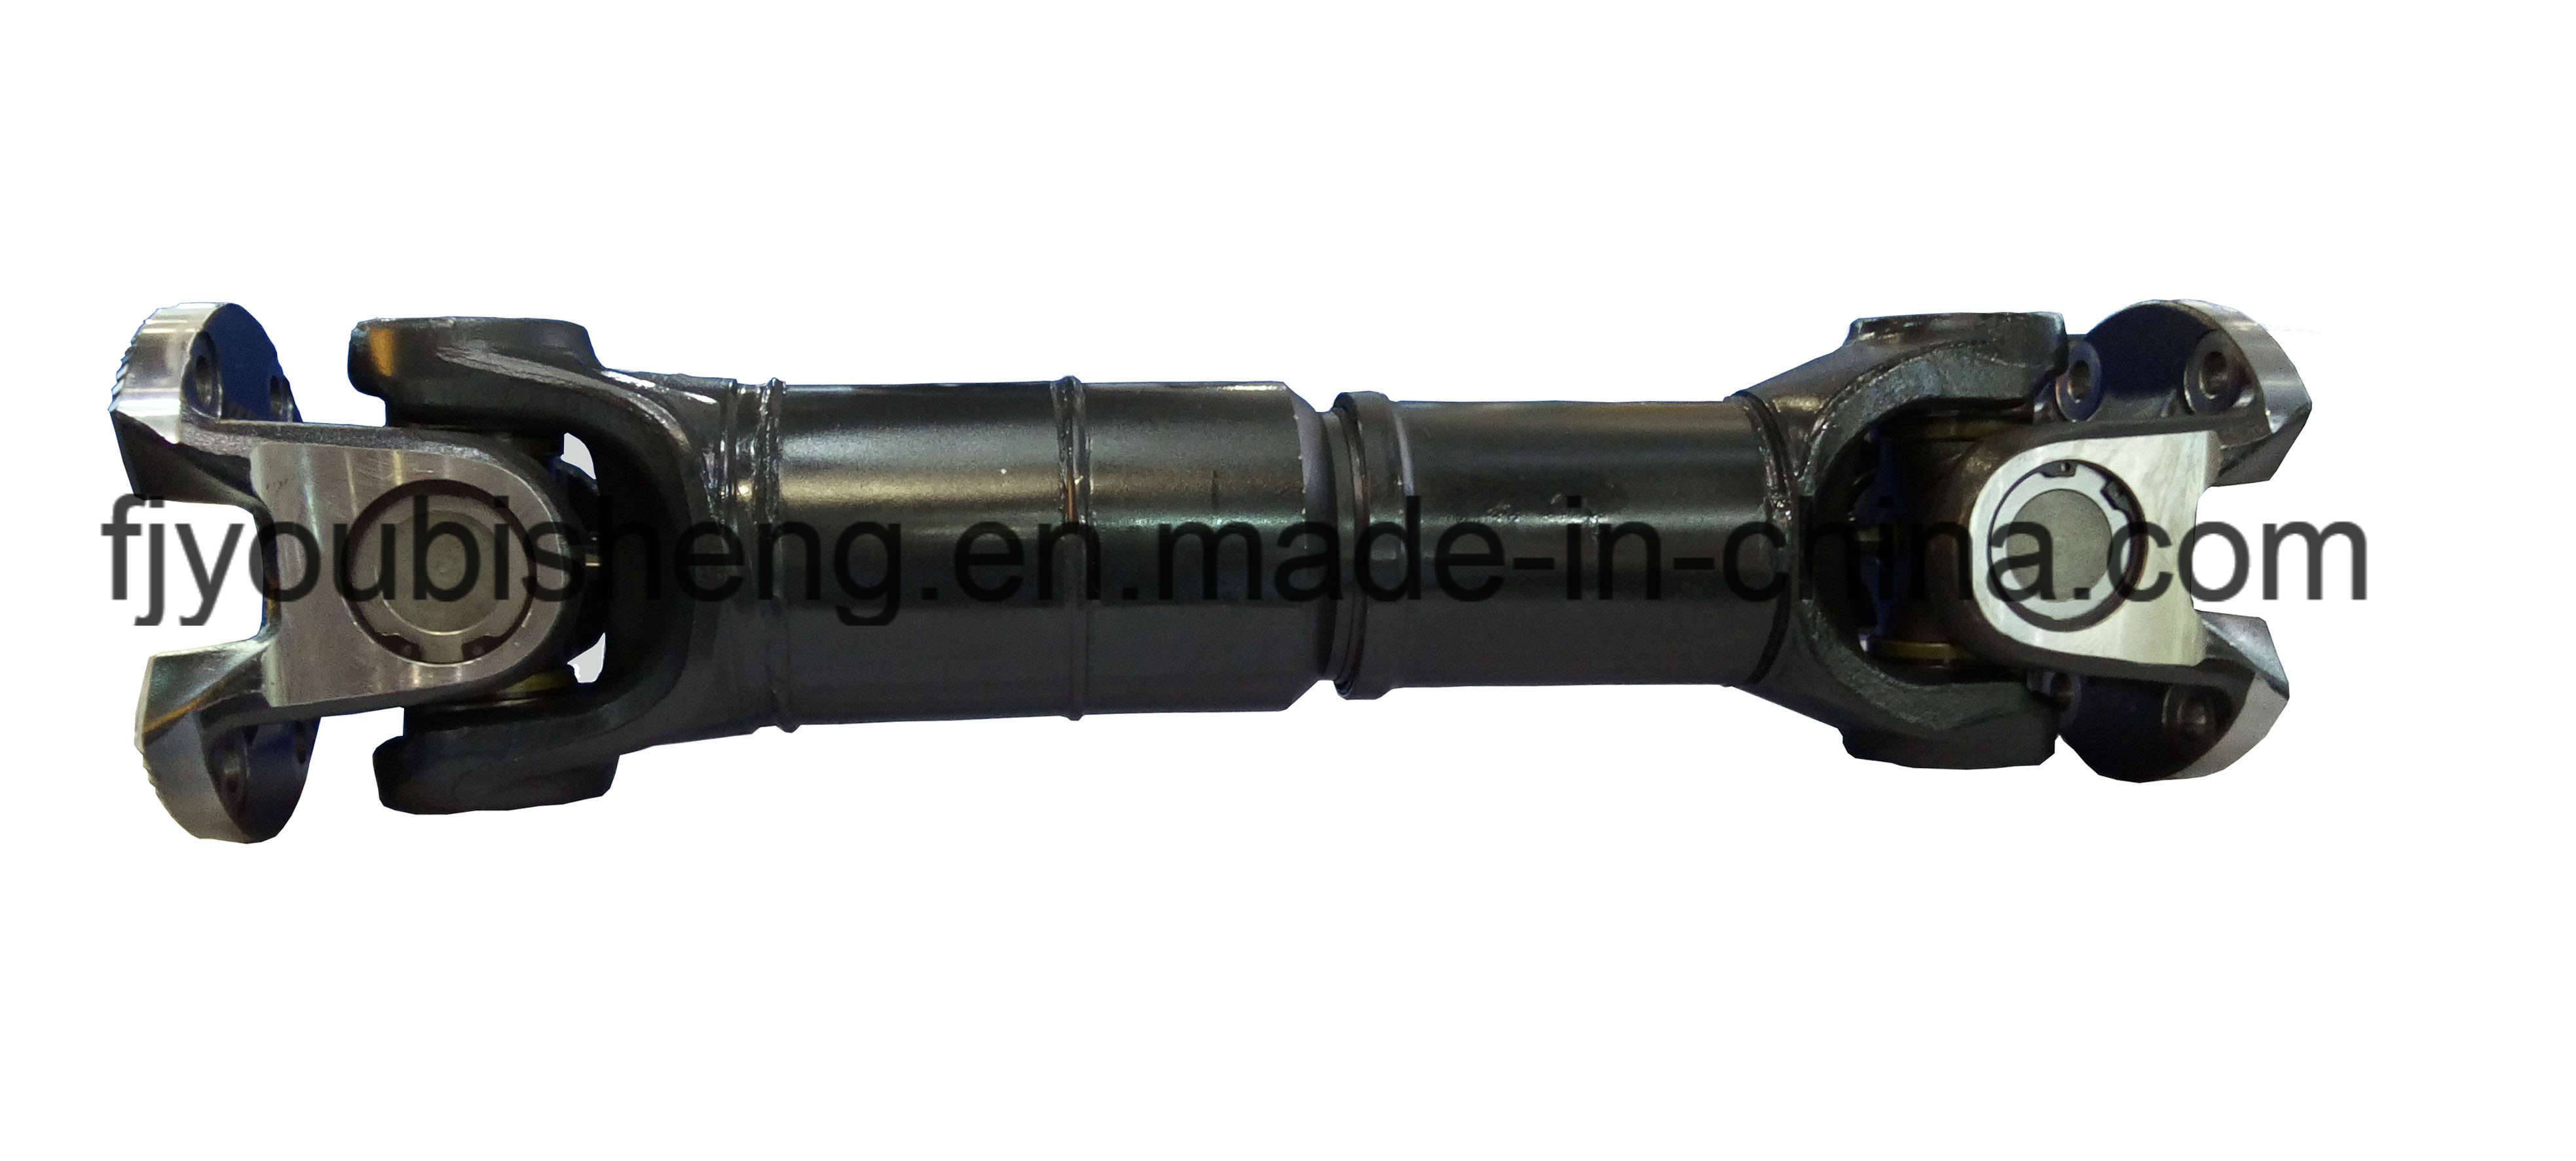 Scania or Volvo Heavy Truck, Drive Shaft, for Universal Joint Od: 57/48/52